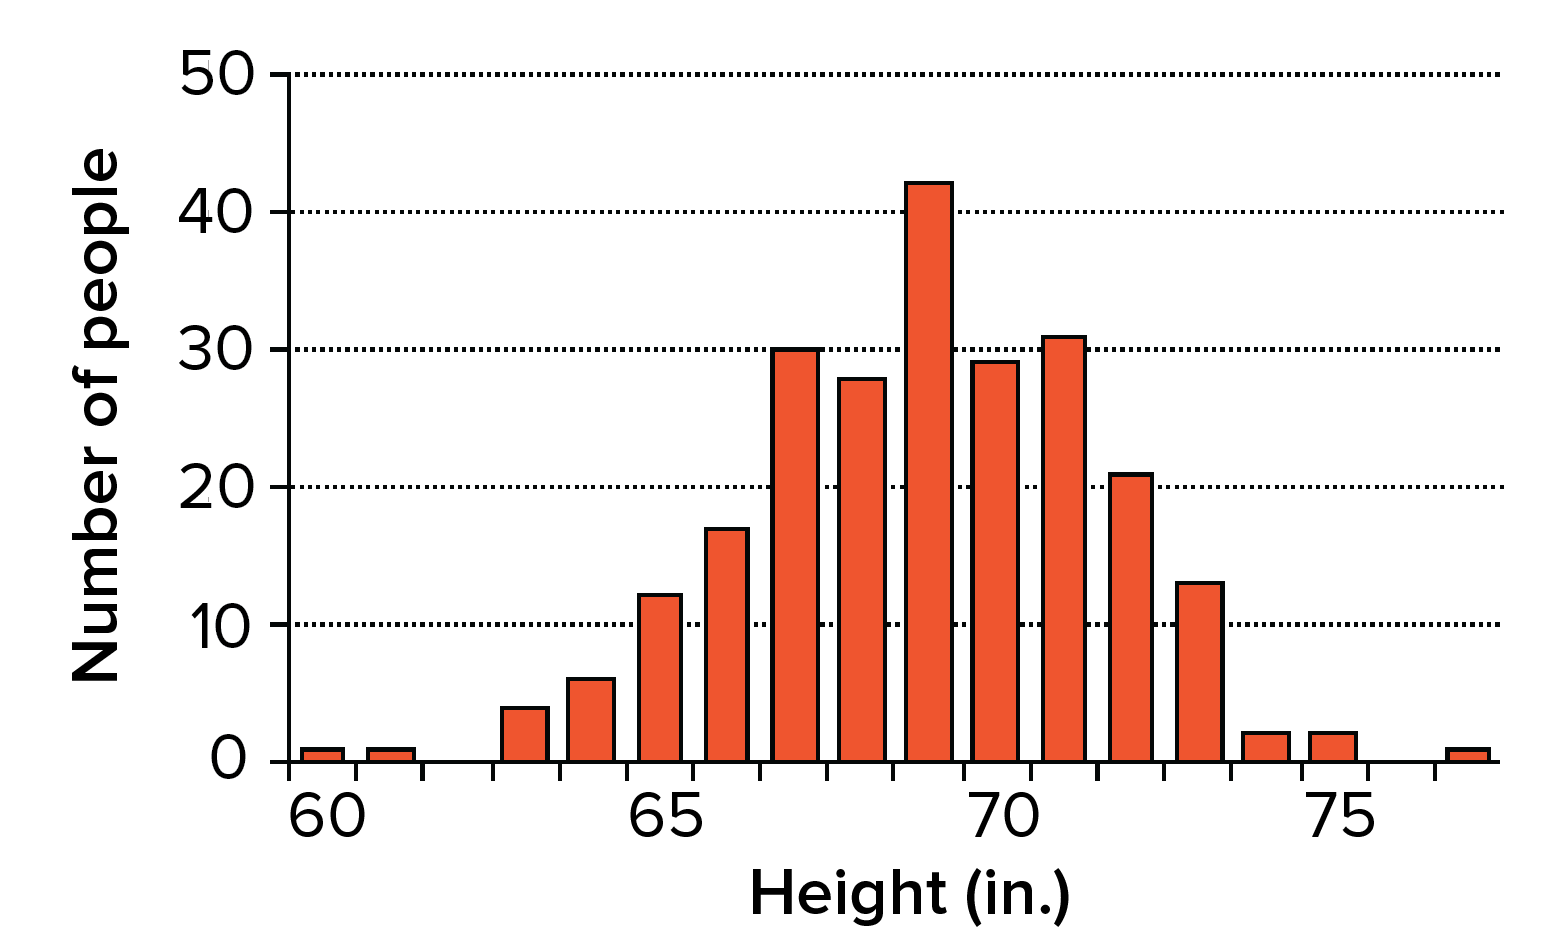 polygenic inheritance and environmental effects article  khan academy histogram showing height in inches of male high school seniors in a sample  group the